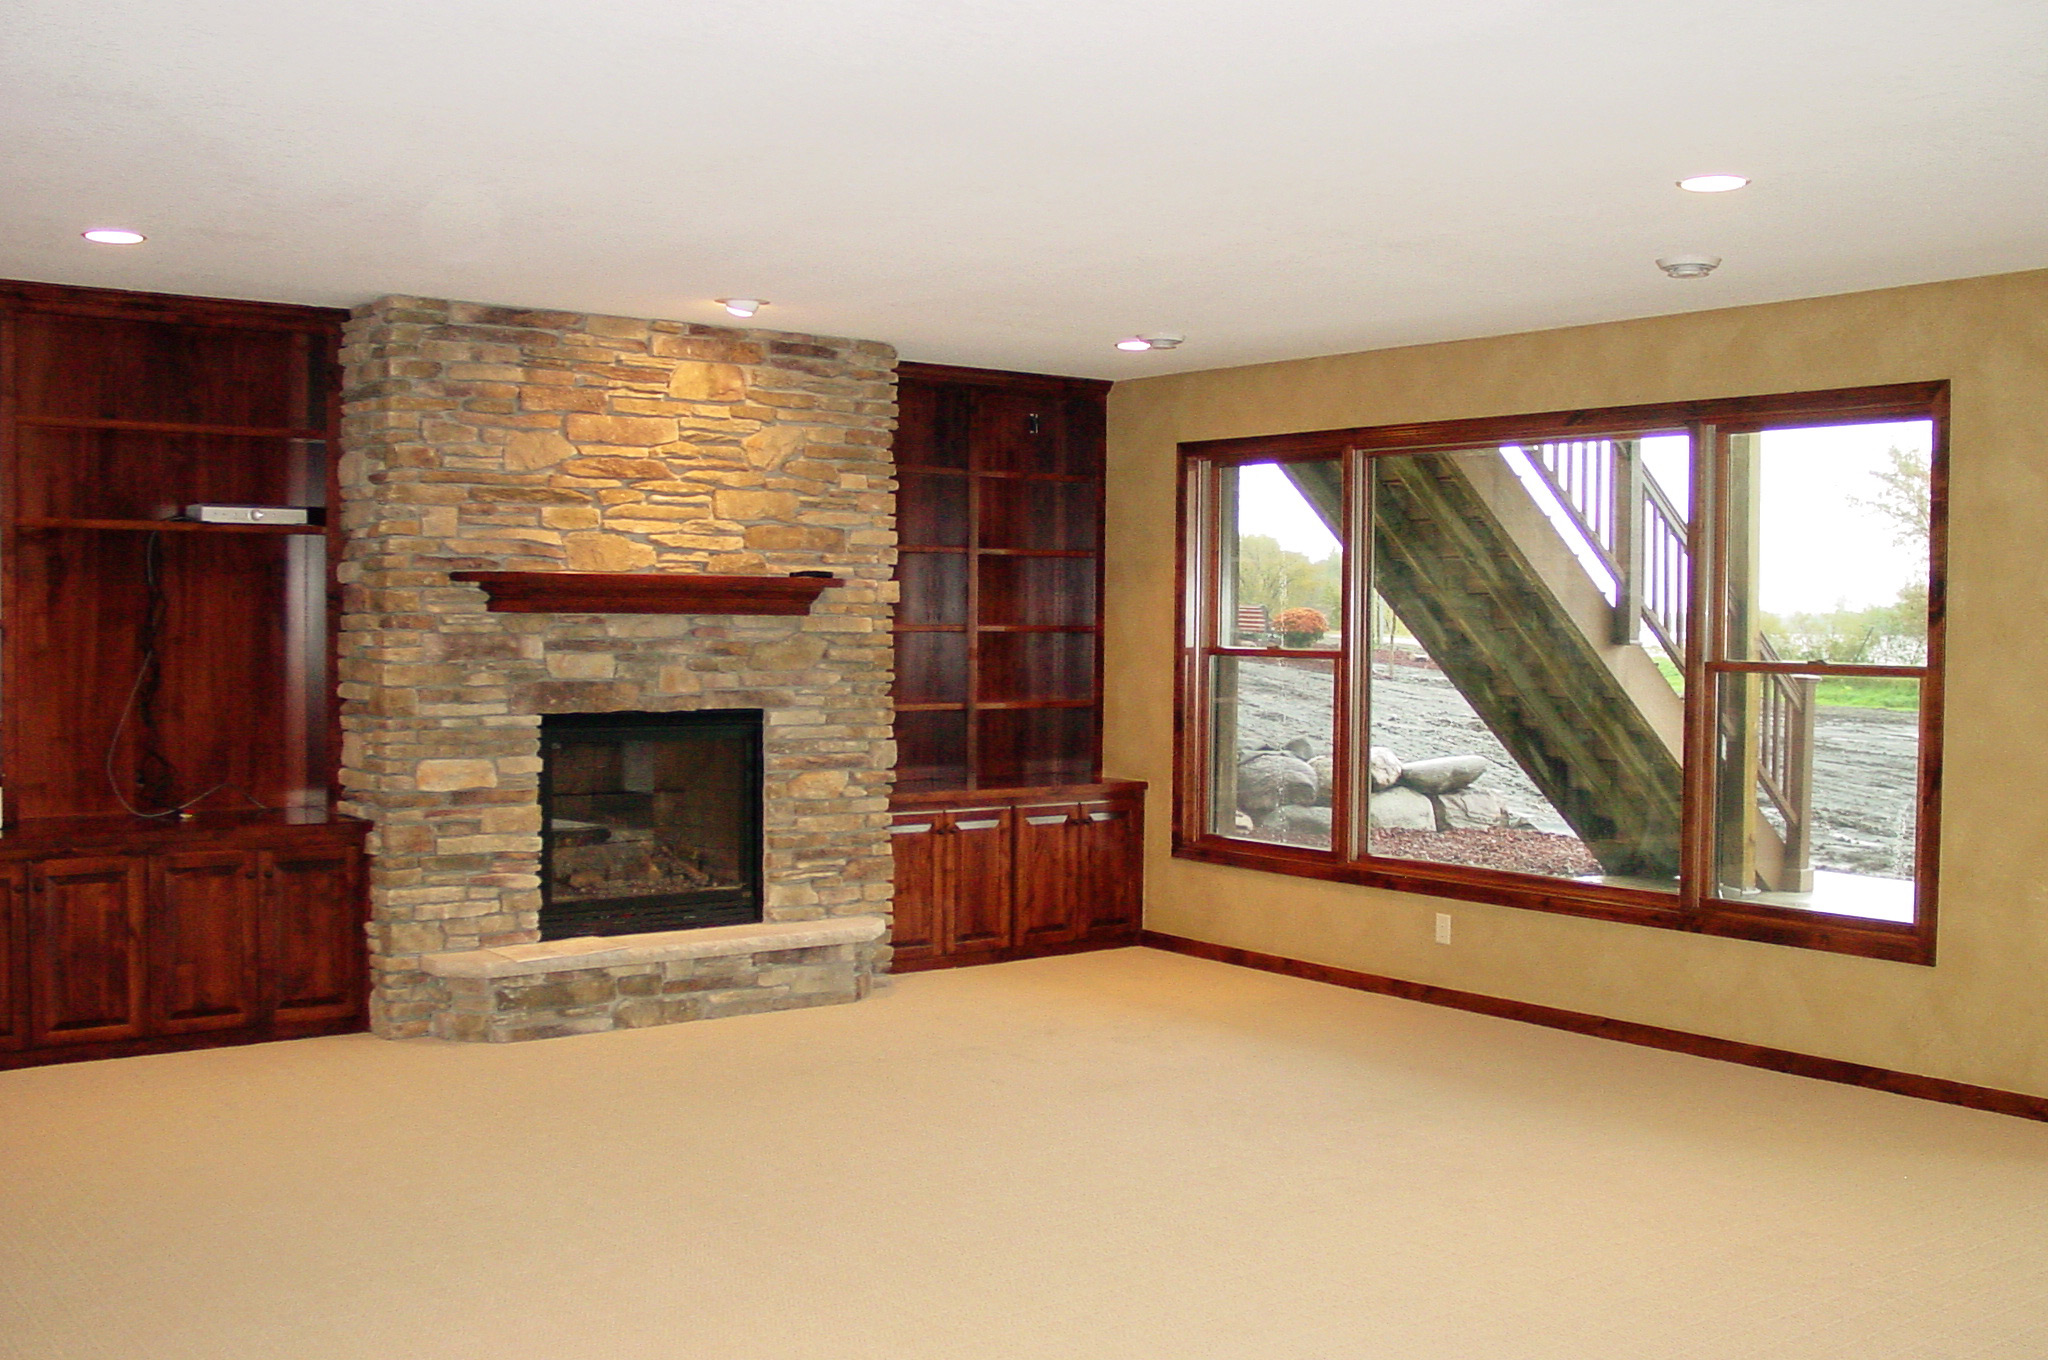 Lower level family room with wood built-ins and stone fireplace